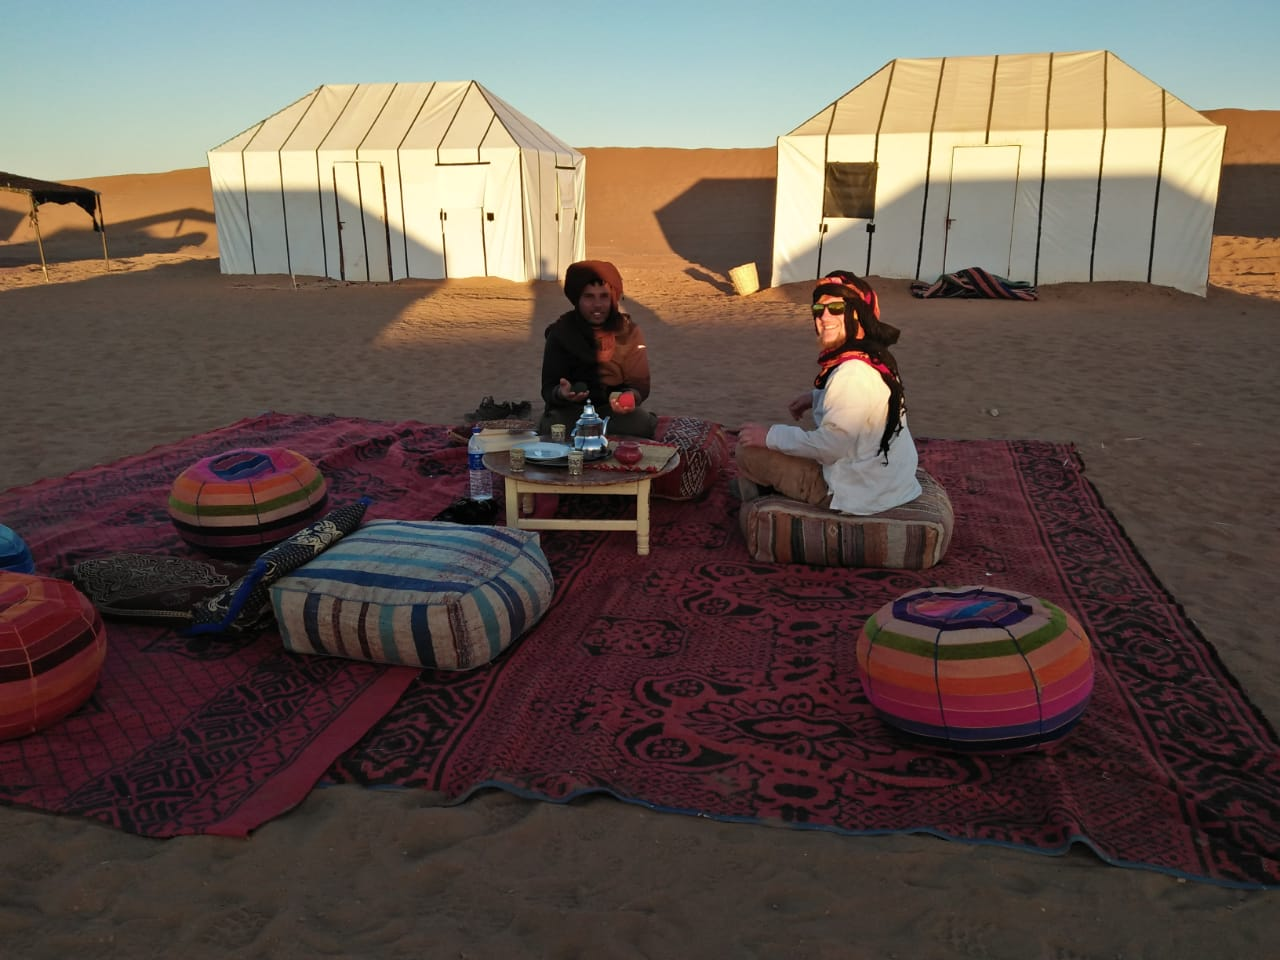 Photo showing nomadic style tents in the Erg Chebbi dunes as part of a desert tour